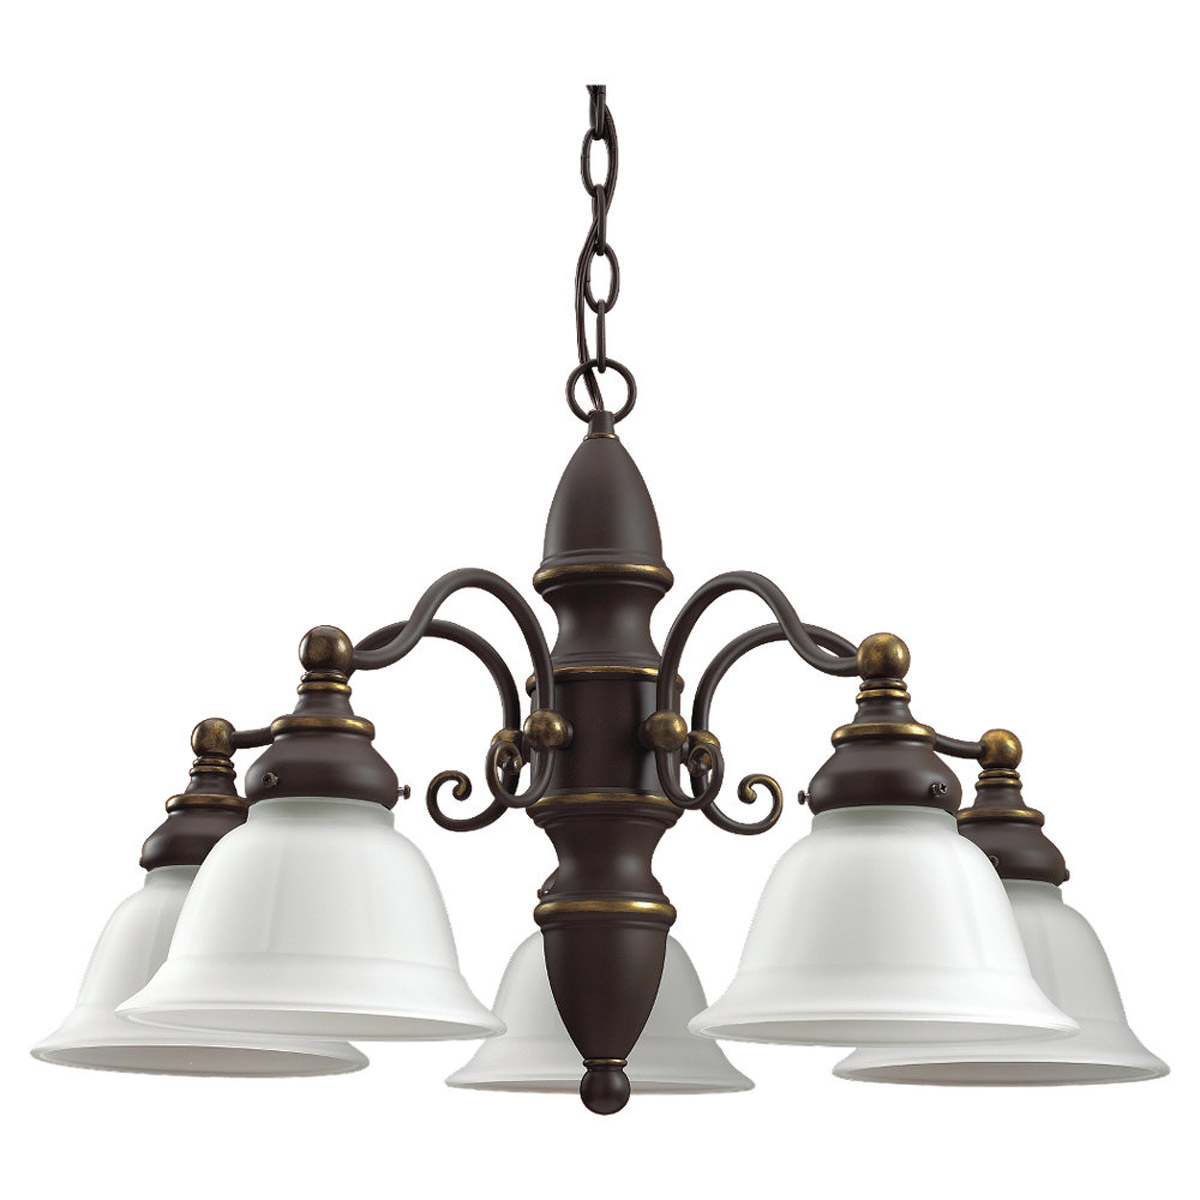 Sea Gull Lighting Canterbury 5 Light Chandelier in Antique Bronze 31051-71 photo